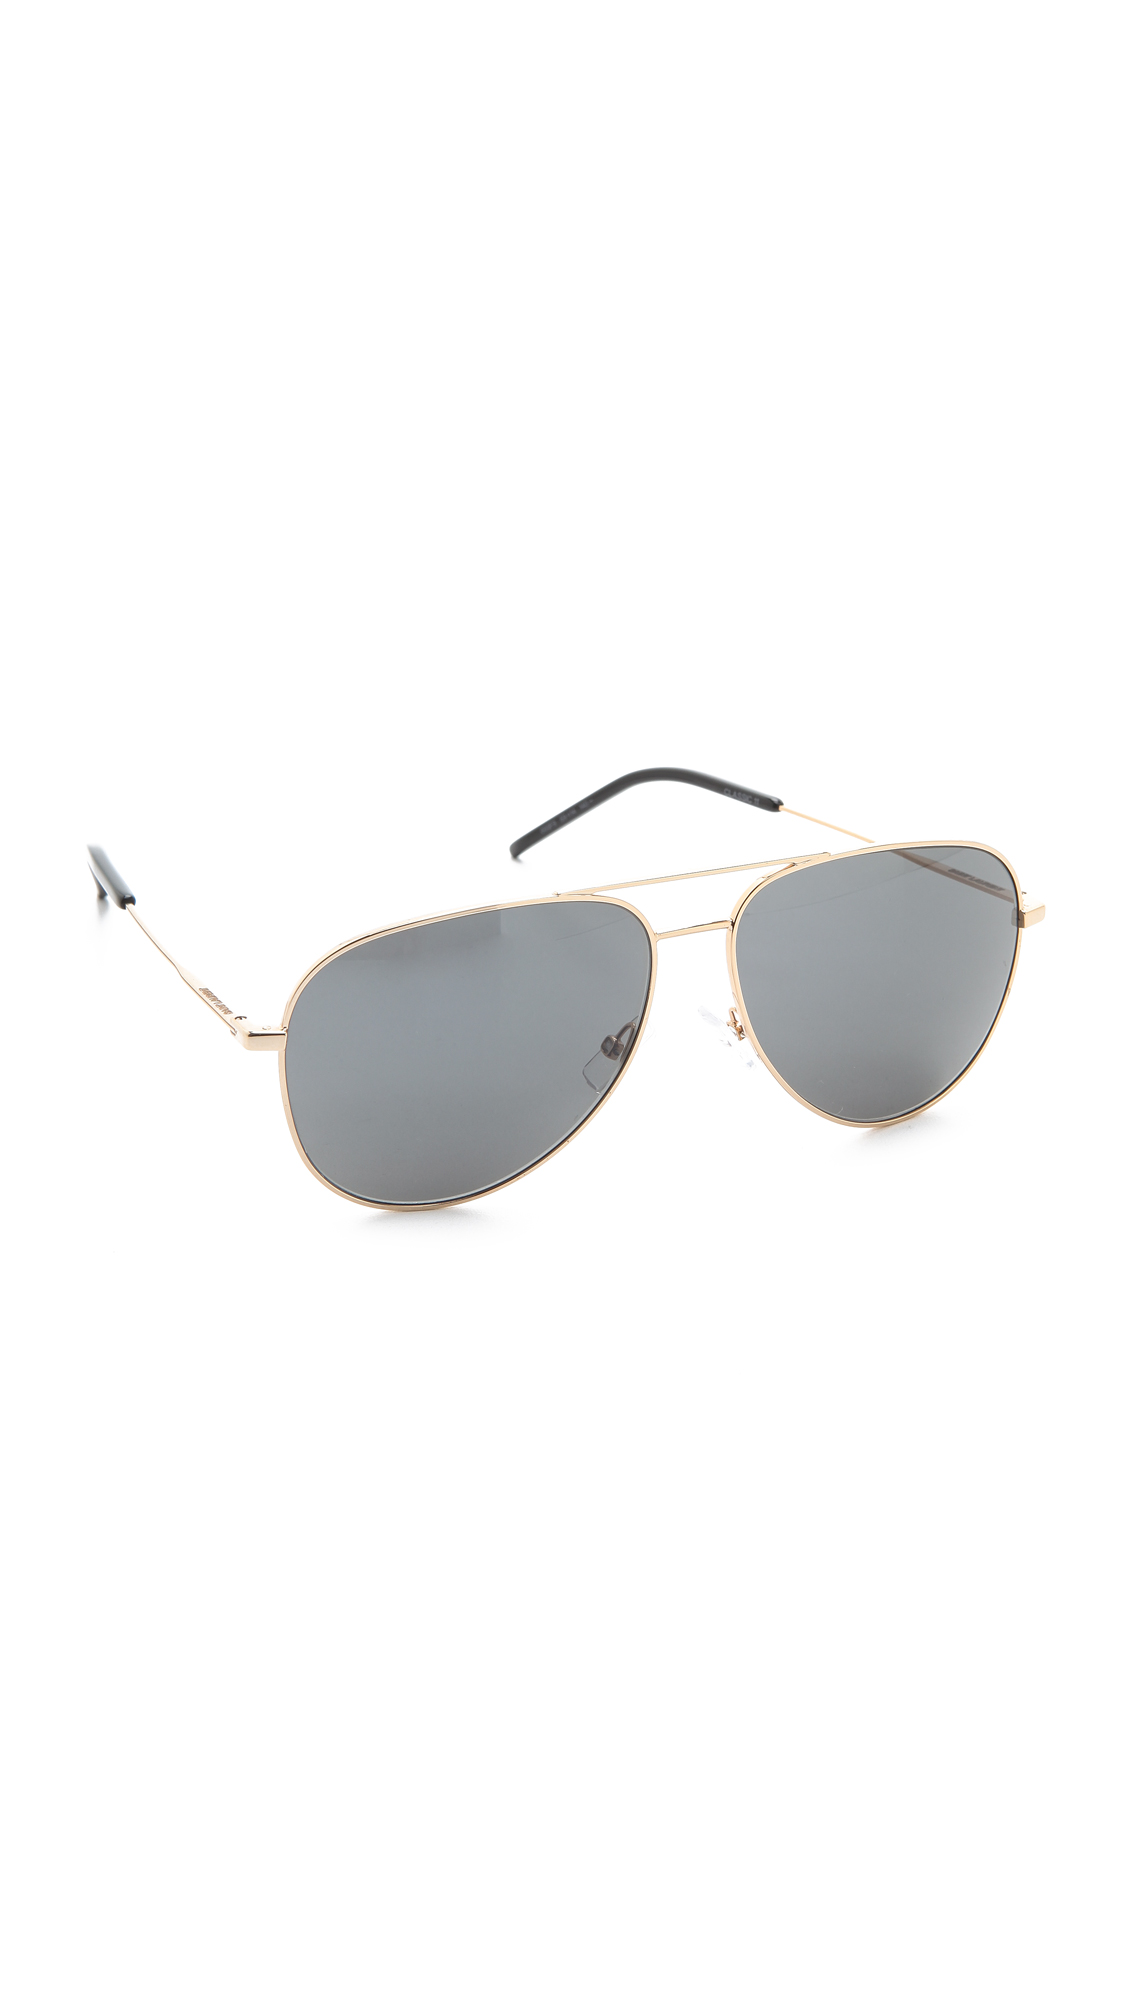 2962a93419 Saint Laurent Classic Metal Aviator Sunglasses